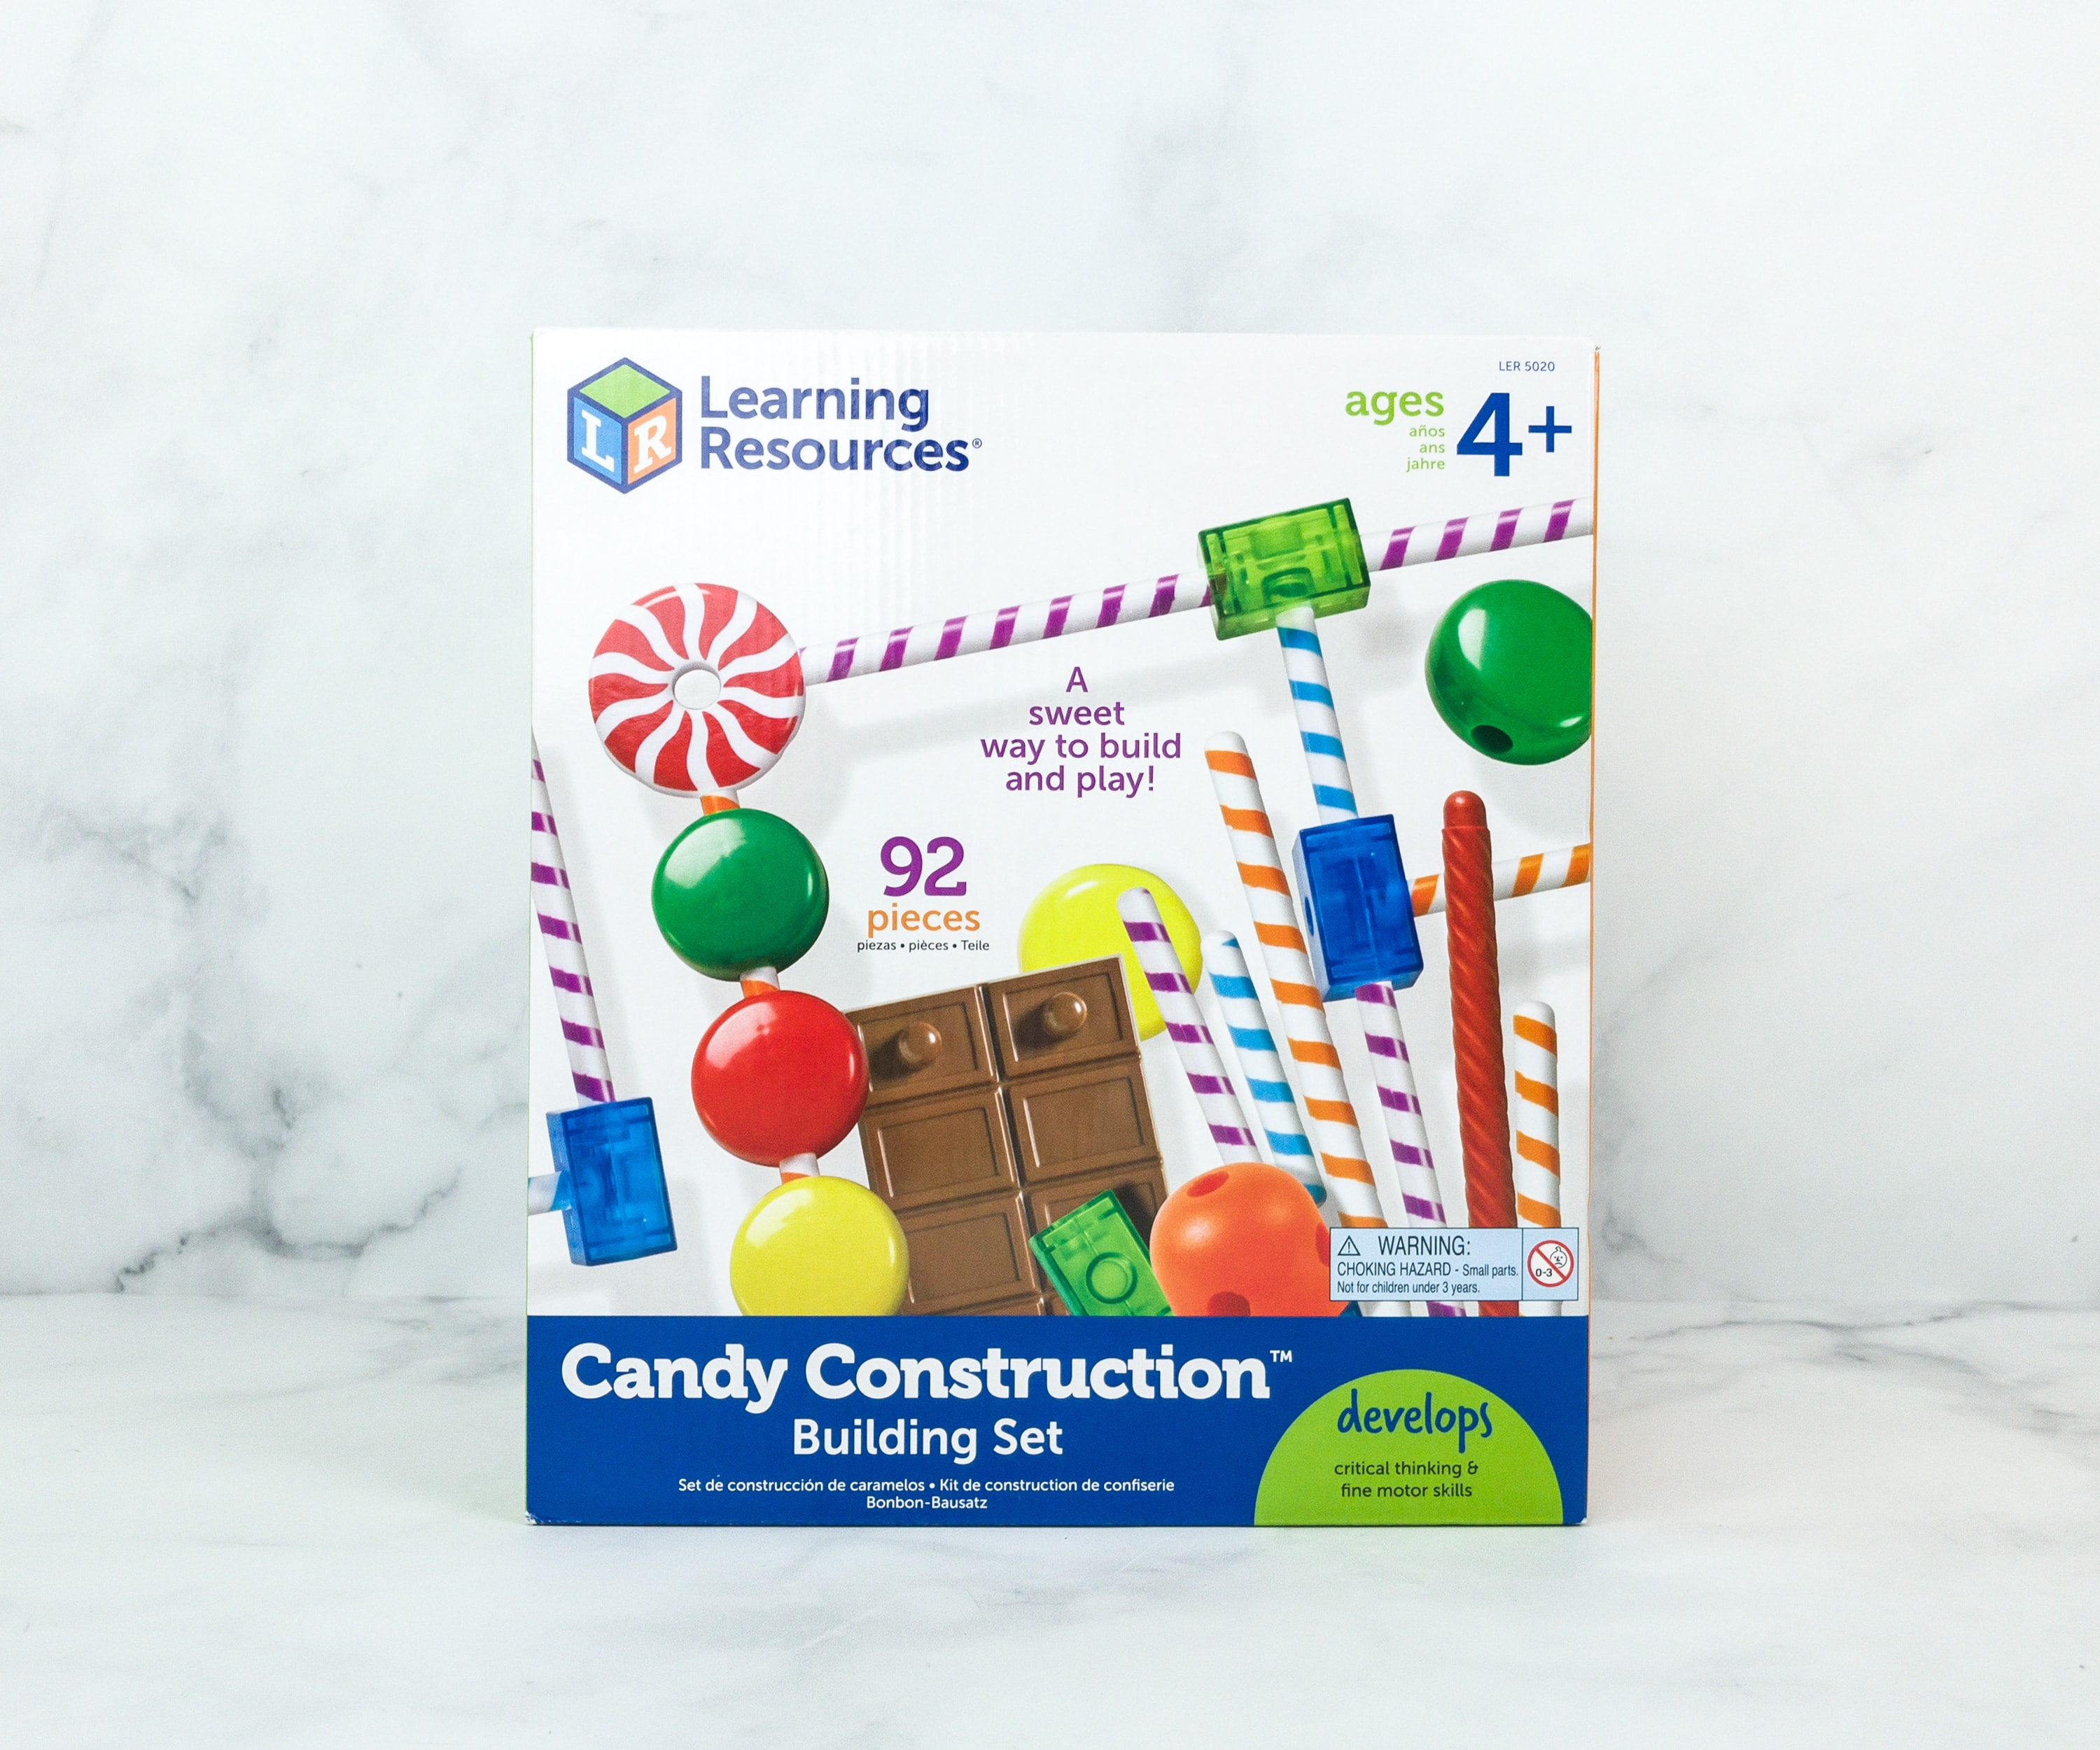 Amazon Stem Toy Club November 2018 Subscription Box Review 3 To 4 Year Old Box Hello Subscription